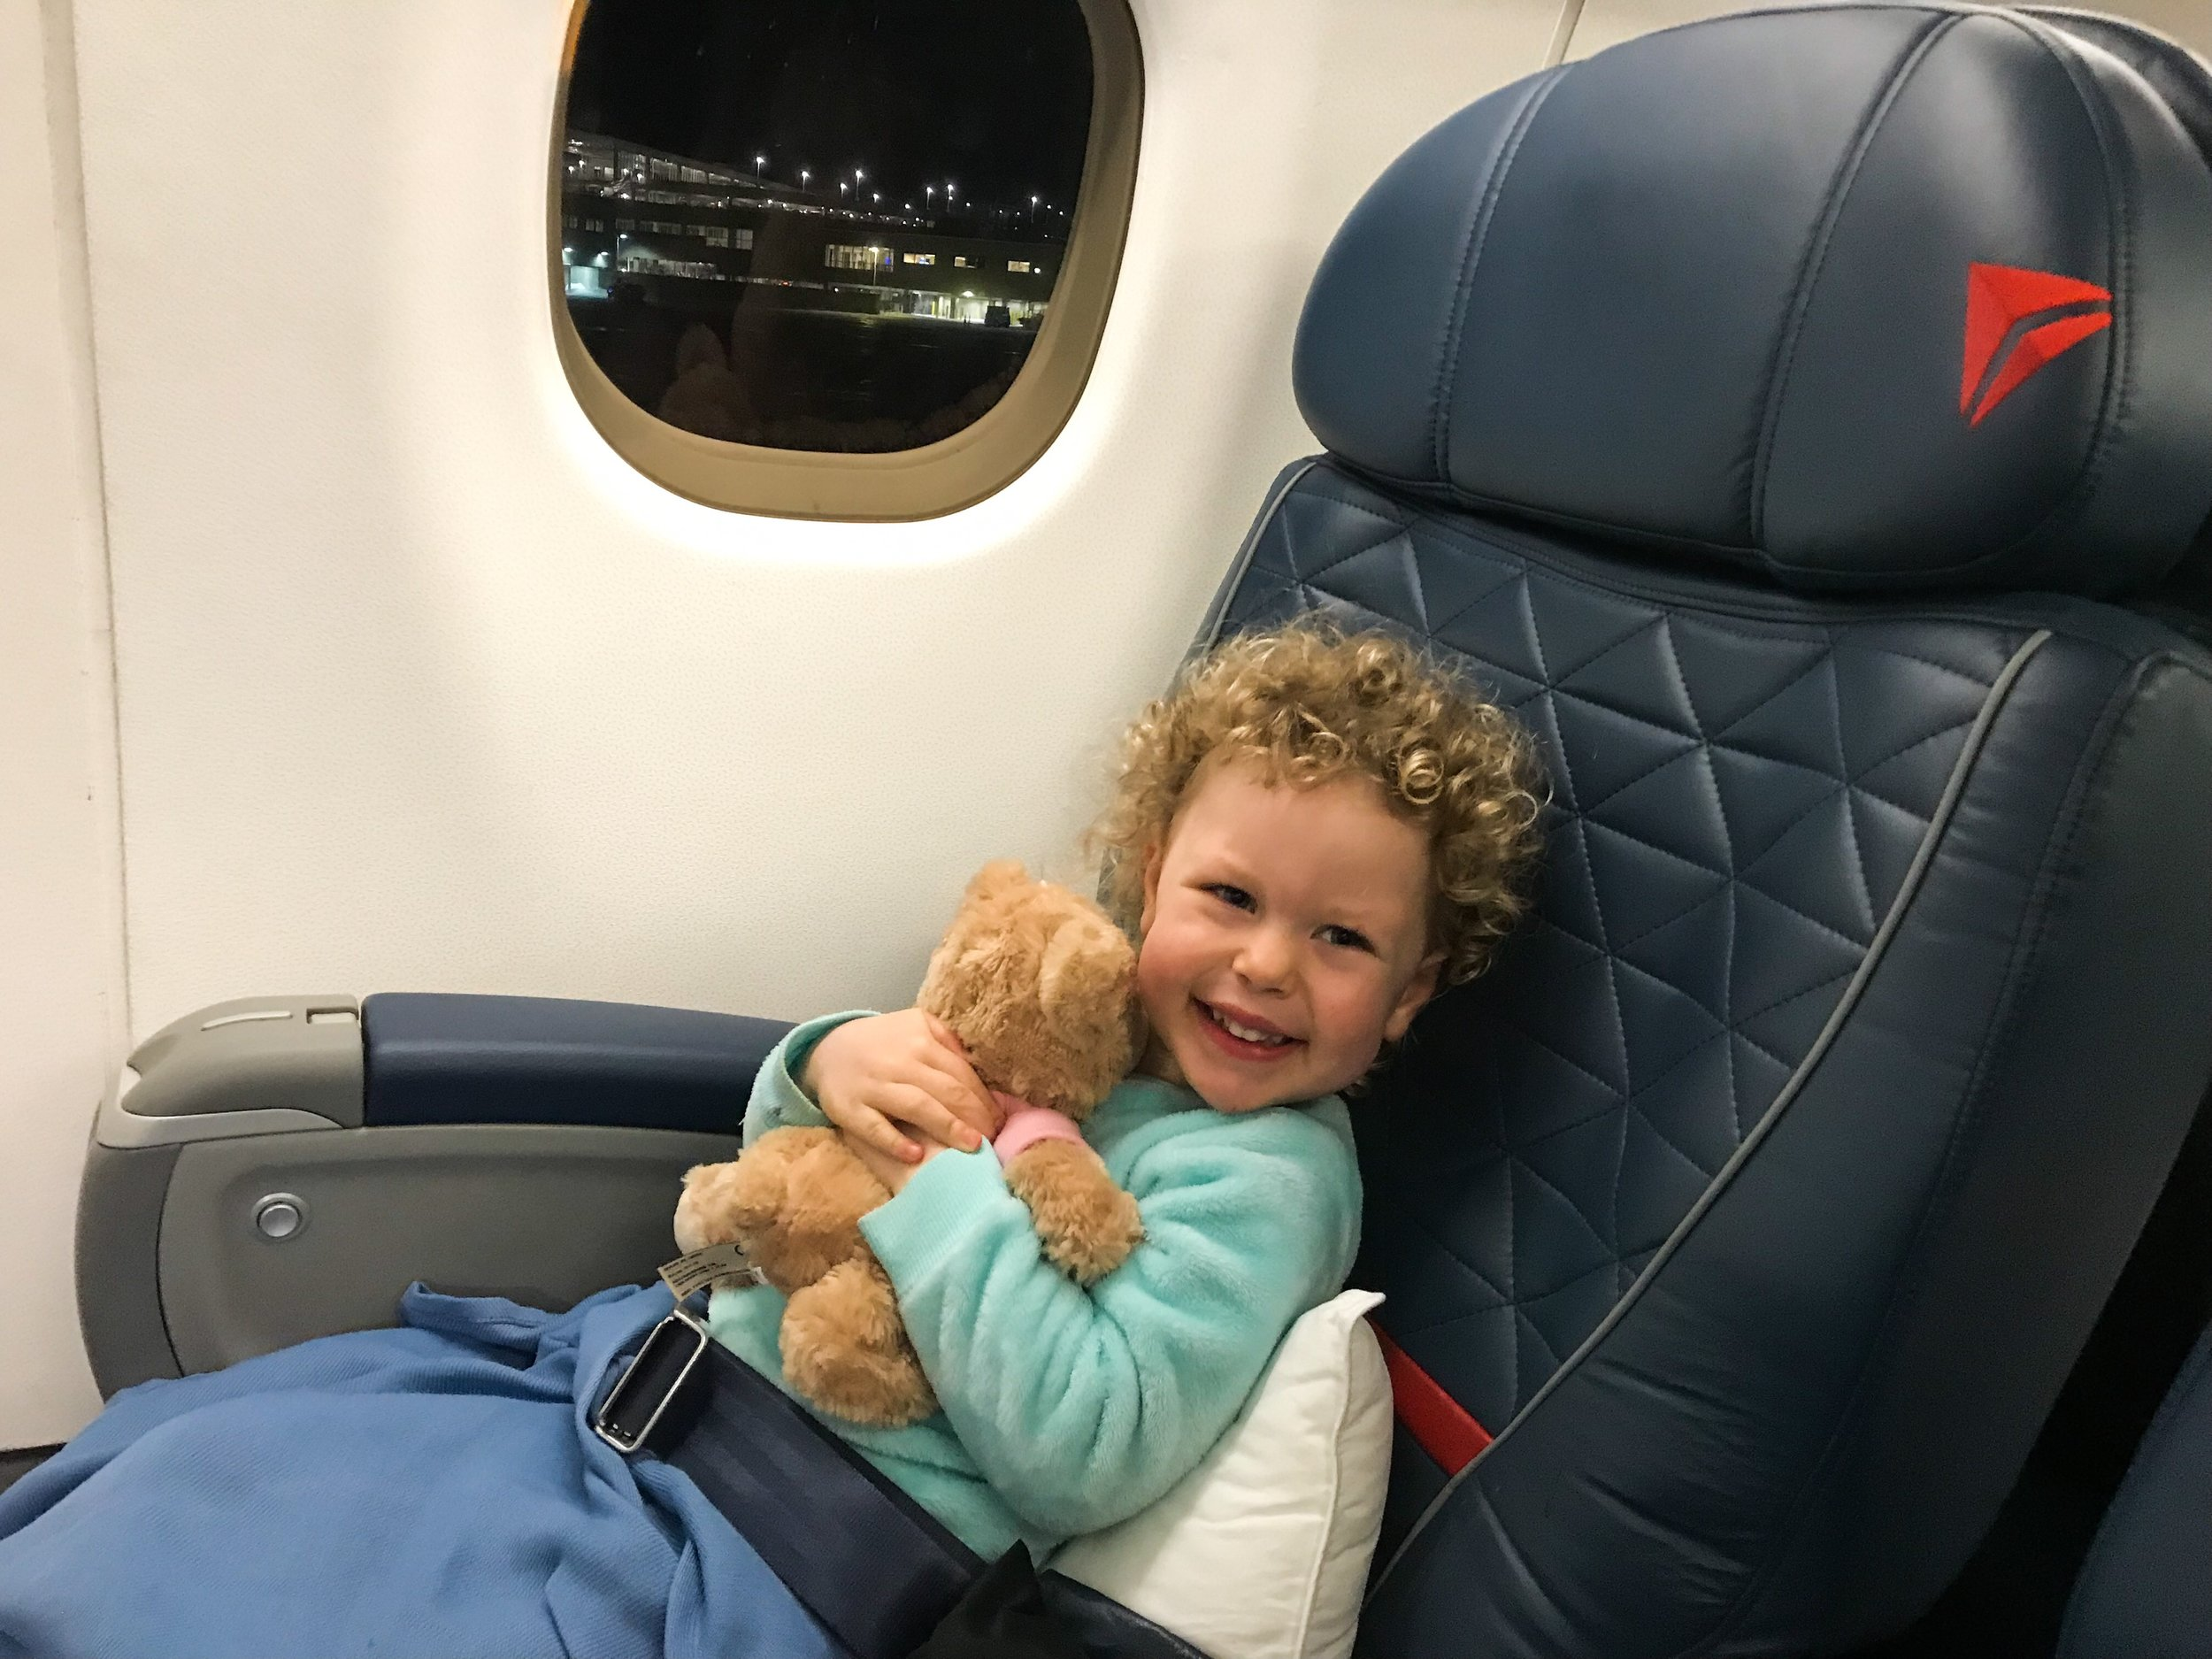 Delta provides First Class passengers with a pillow and blanket (you have to bring your own teddy bear).